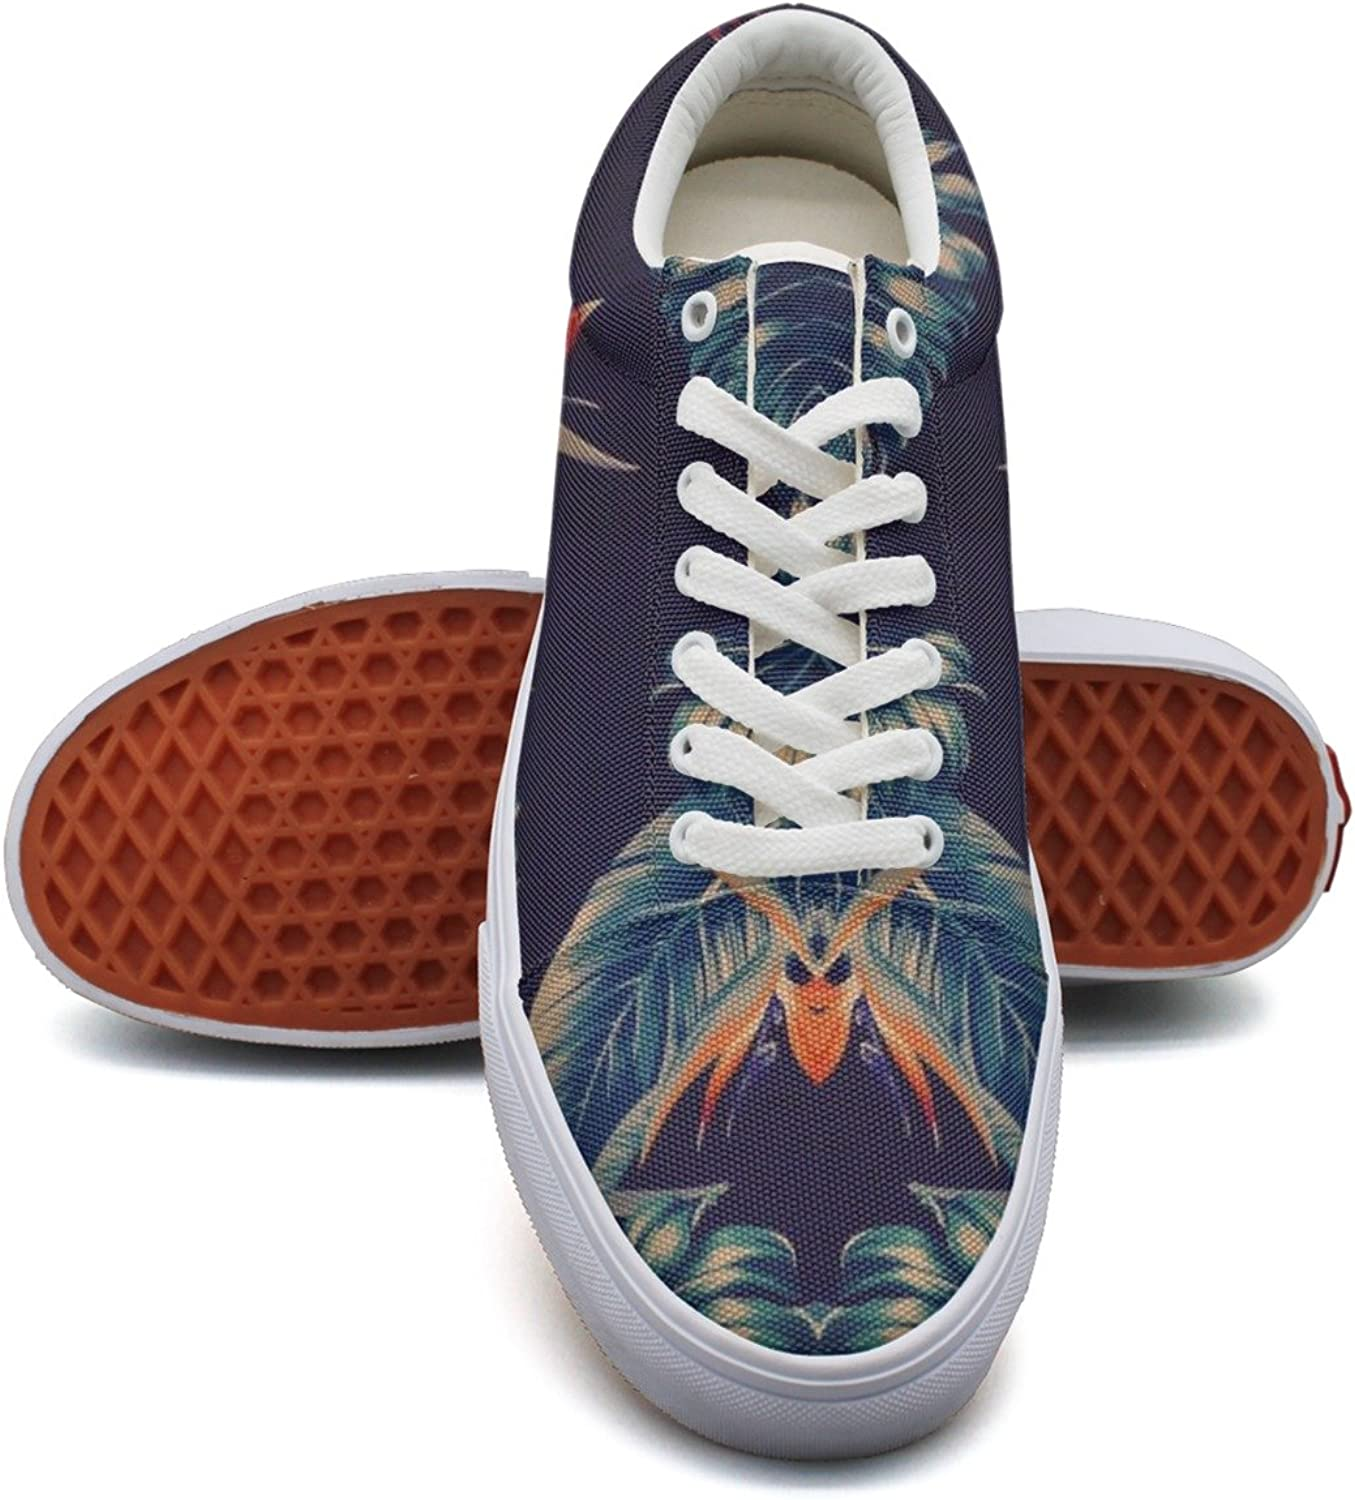 Feenfling Birds of Paradise Pattern Womens Light Canvas Low Top Cool Volleyball Sneakers for Women's